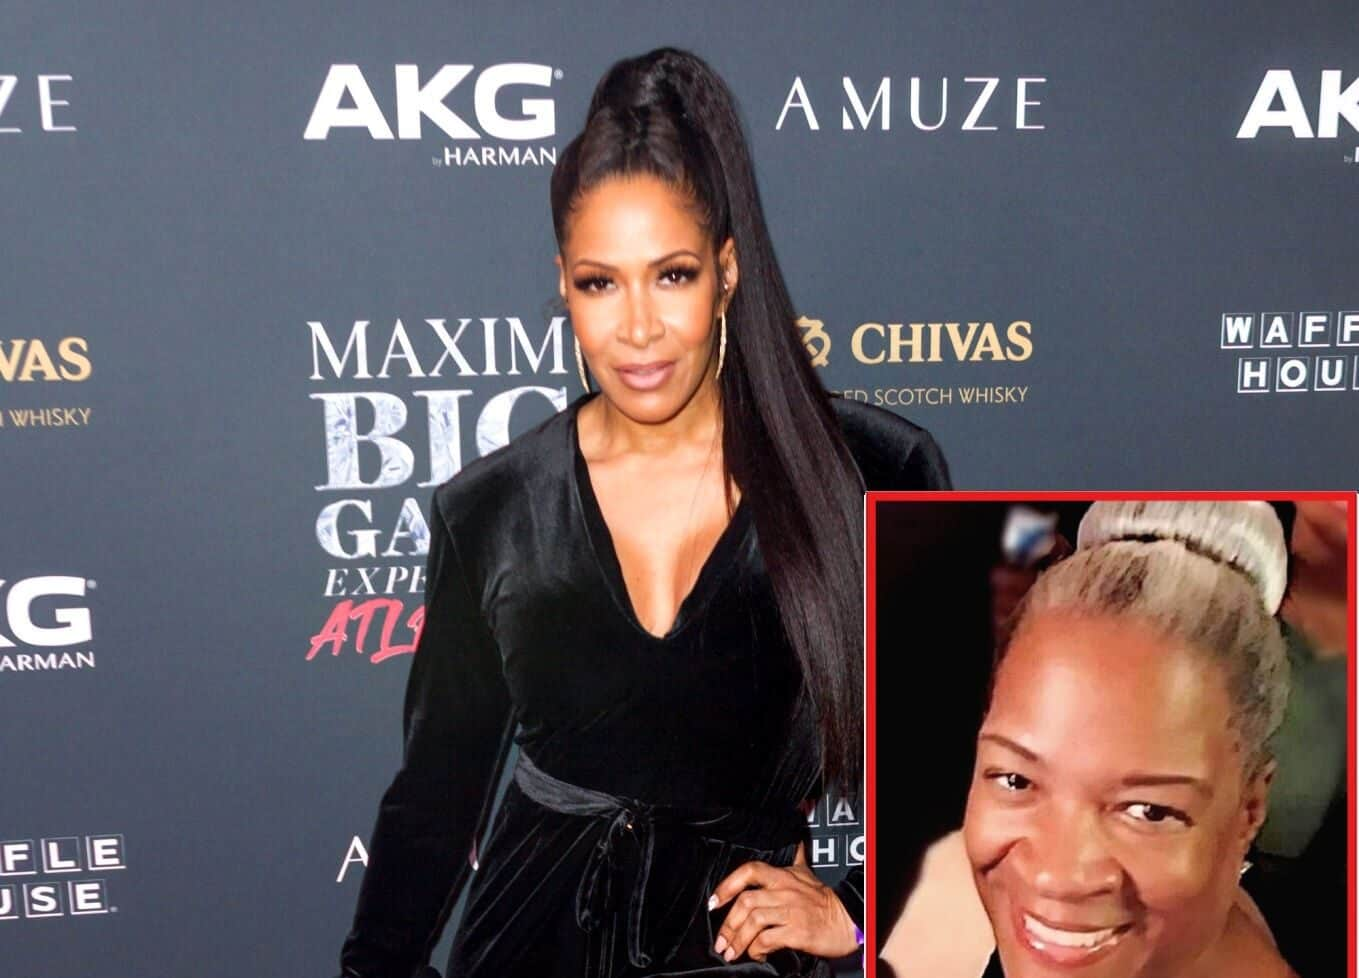 """RHOA Alum Sheree Whitfield Confirms Her Mother Has Been Missing For Weeks Now, Shares Details About Her Disappearance and Says """"We Are Leaning on God"""""""